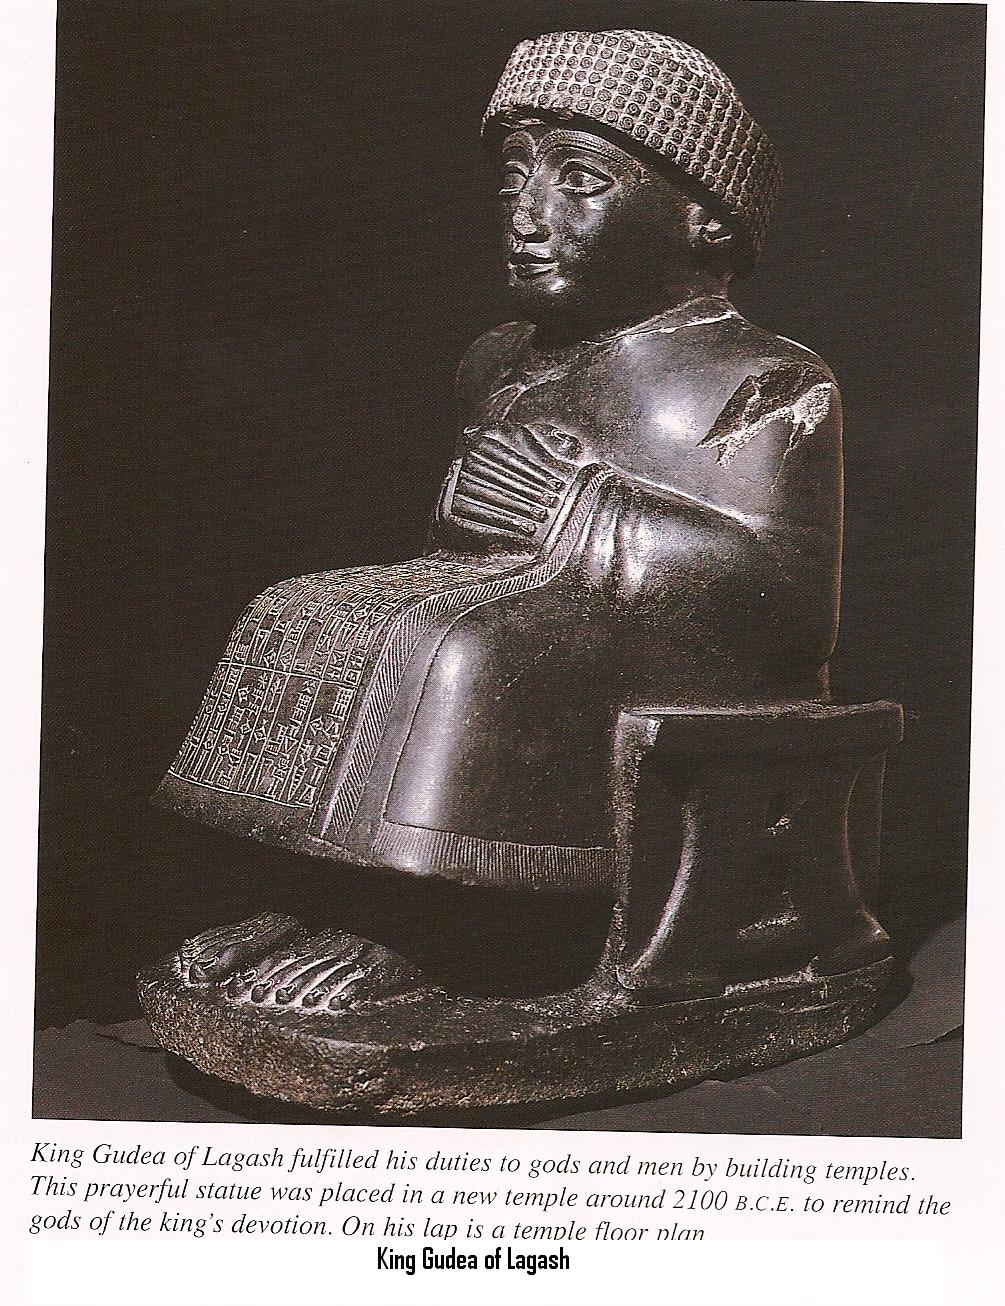 8g - giant mixed-breed King Gudea of Lagash, artefacts are under attack by Radical Islamists, they have destroyed thousands of them recently, as they strive to build a Caliphate for Islam, allowing no contradictory knowledge of ancient history